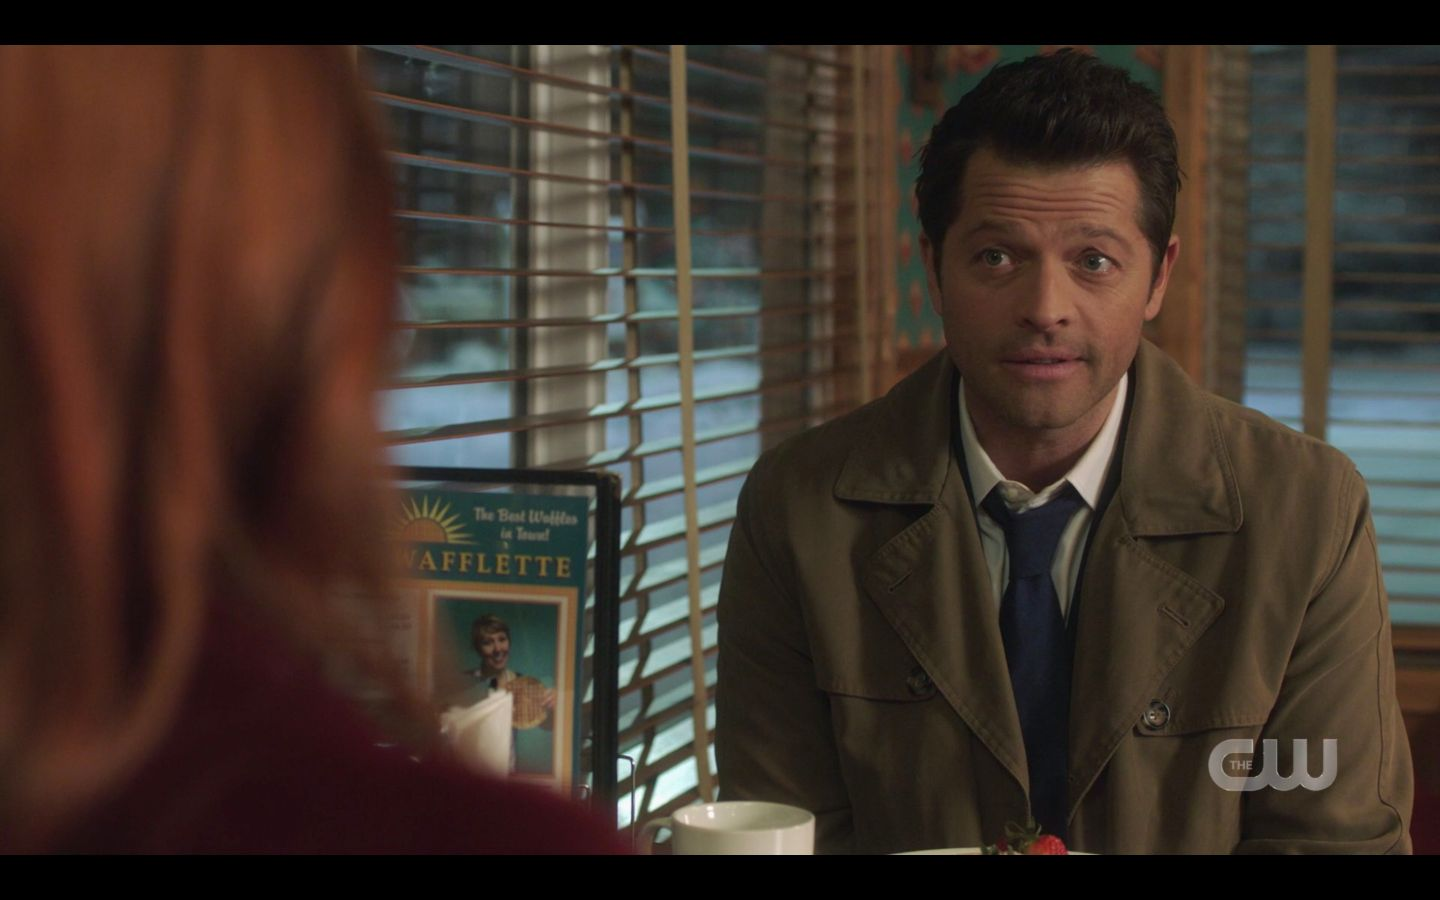 Supernatural Castiel with Anael I need your hel to contact God 14.17